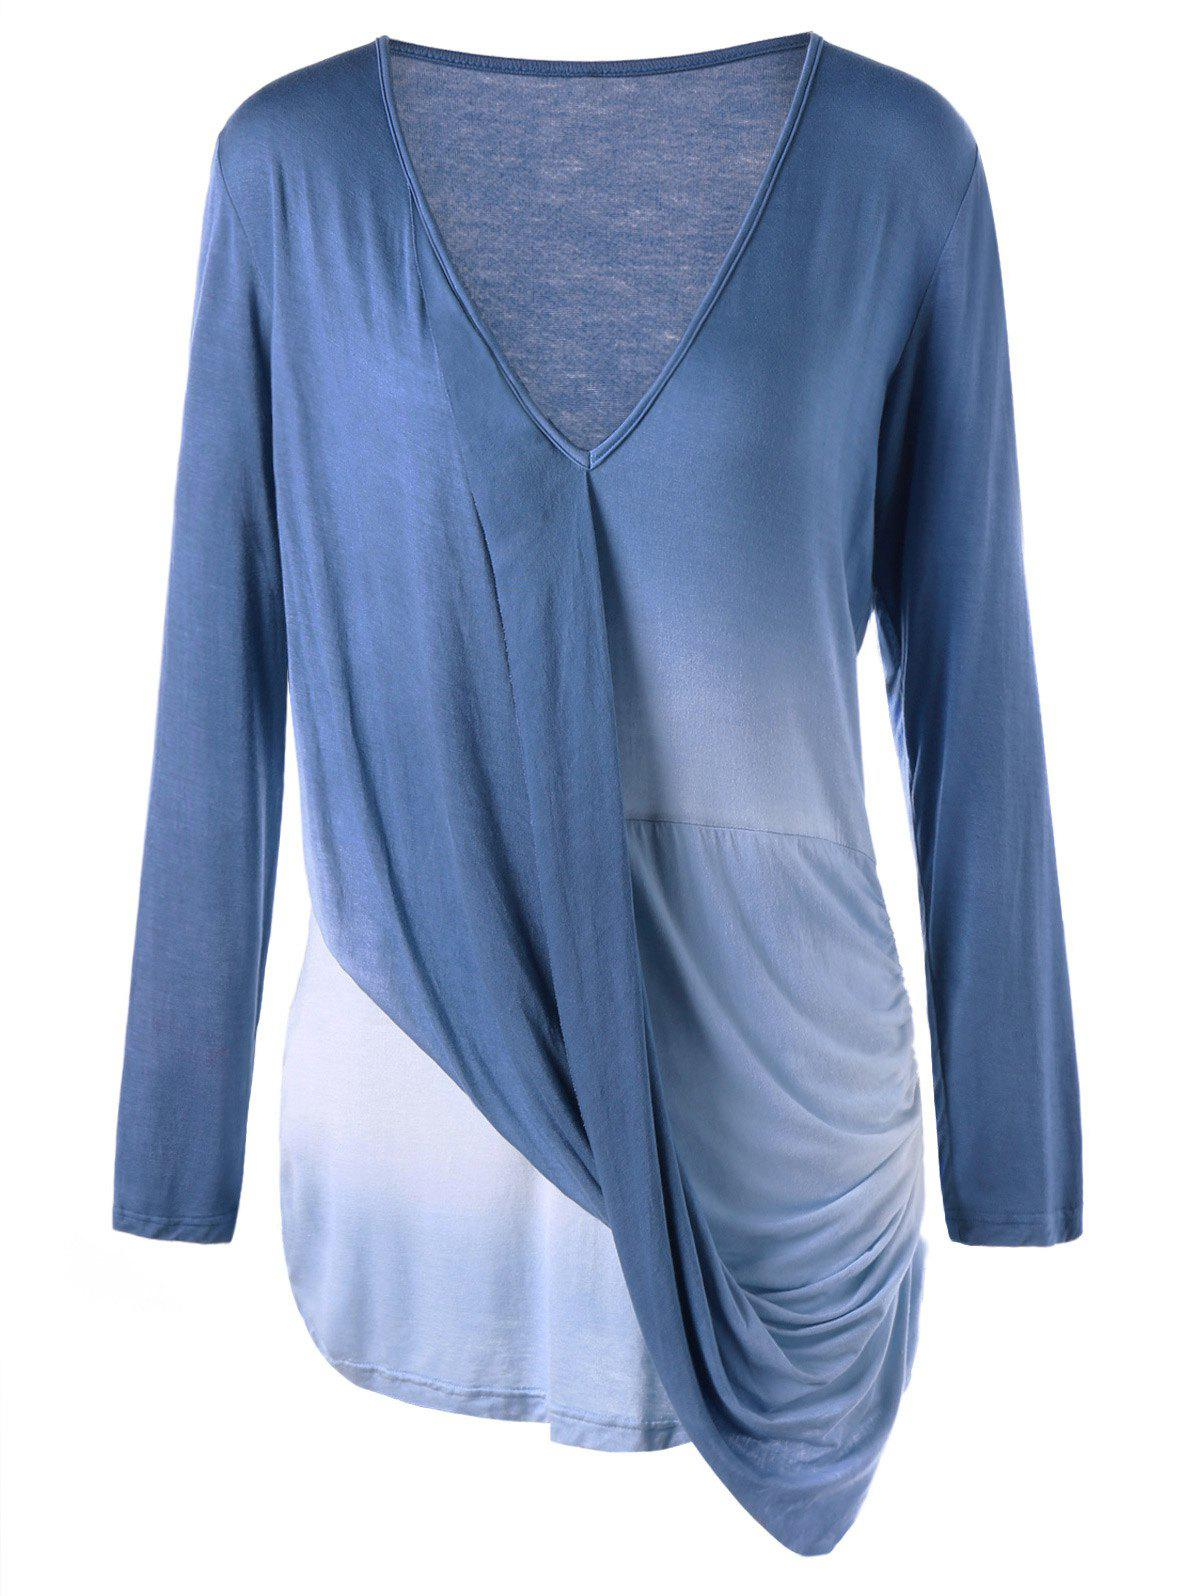 Plus Size Long Sleeve Ombre Draped TopWOMEN<br><br>Size: 3XL; Color: COLORMIX; Material: Cotton,Polyester; Shirt Length: Long; Sleeve Length: Full; Collar: V-Neck; Style: Casual; Season: Fall; Embellishment: Draped; Pattern Type: Ombre; Weight: 0.3000kg; Package Contents: 1 x T-shirt;